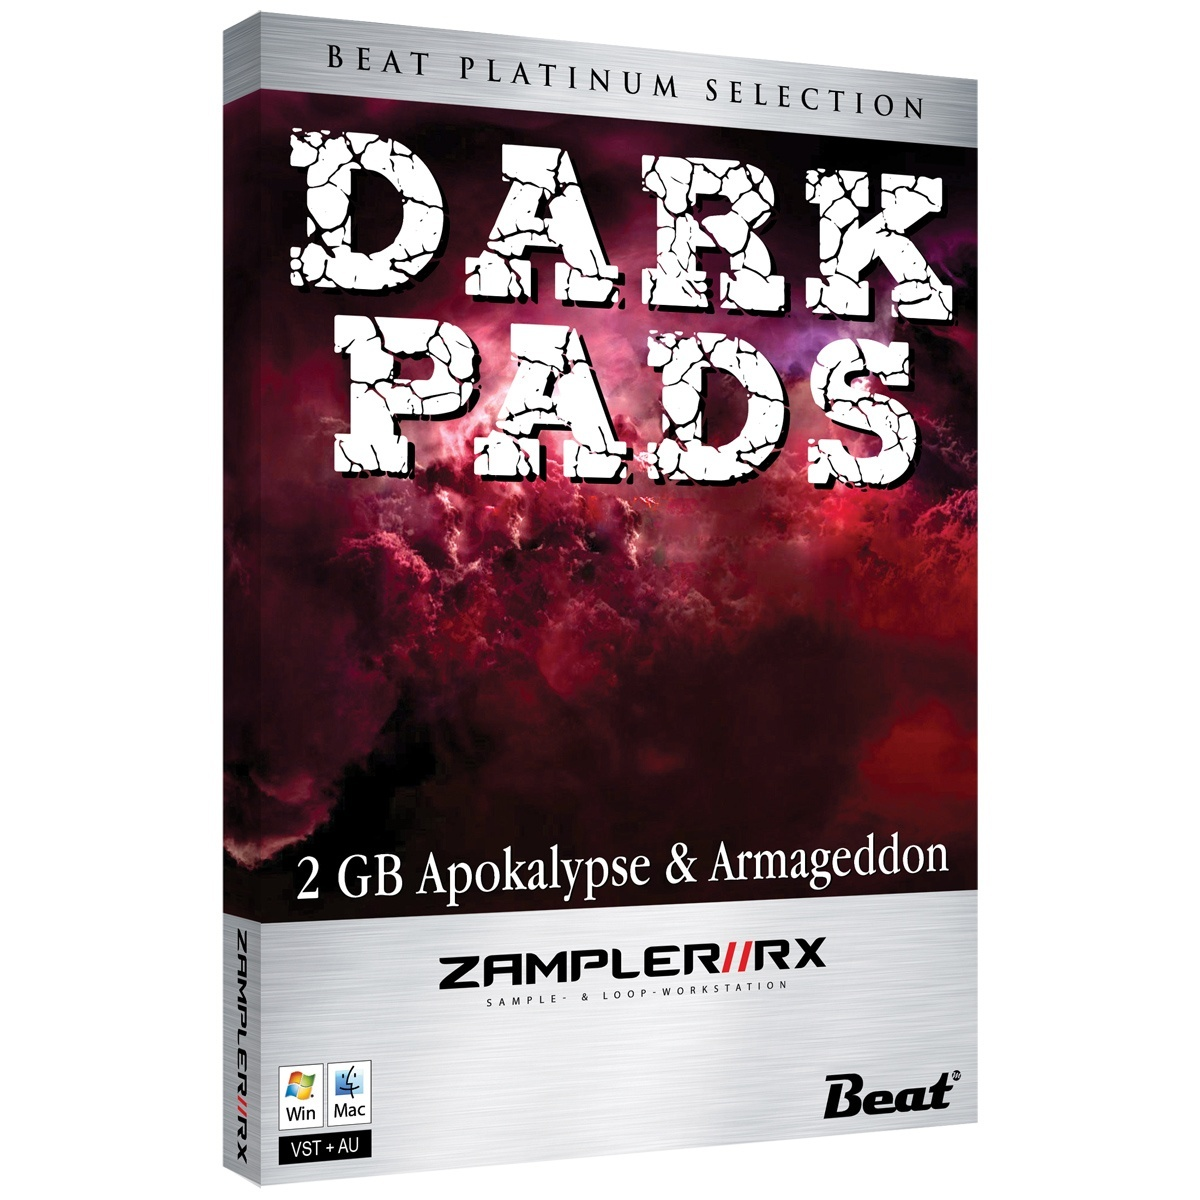 DARK PADS – 40 patches for Zampler//RX workstation (Win/OSX plugin included)